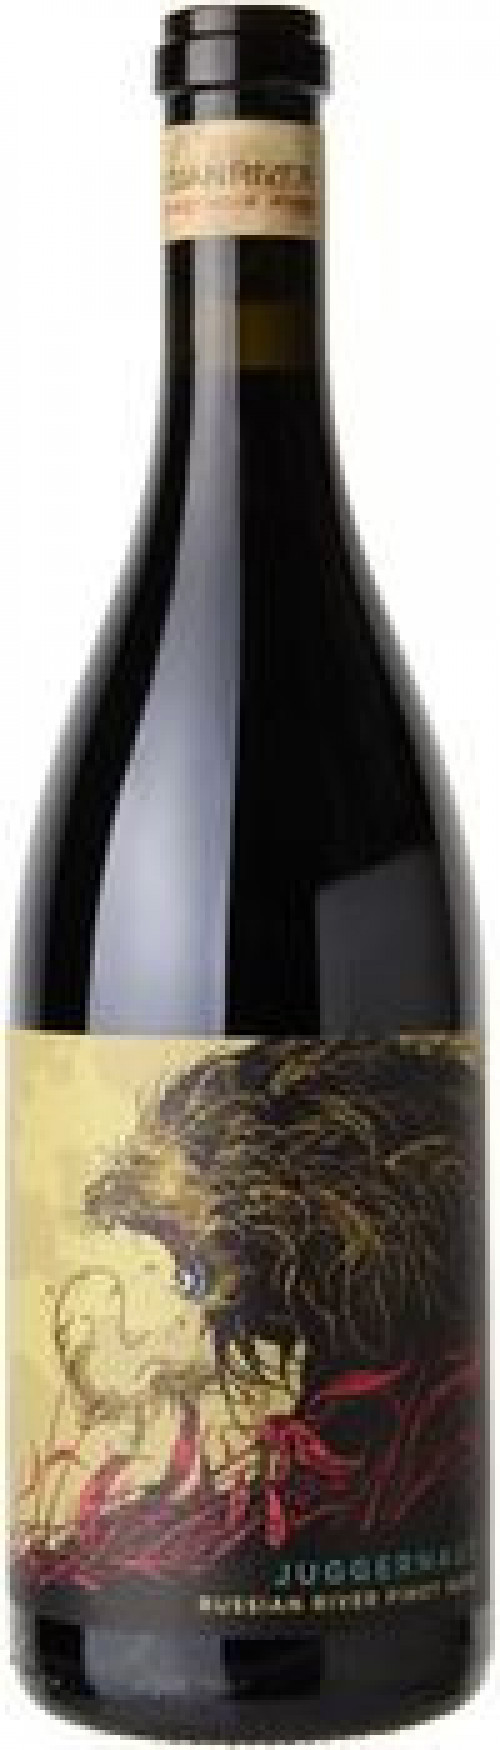 Juggernaut Russian River Pinot Noir 750ml